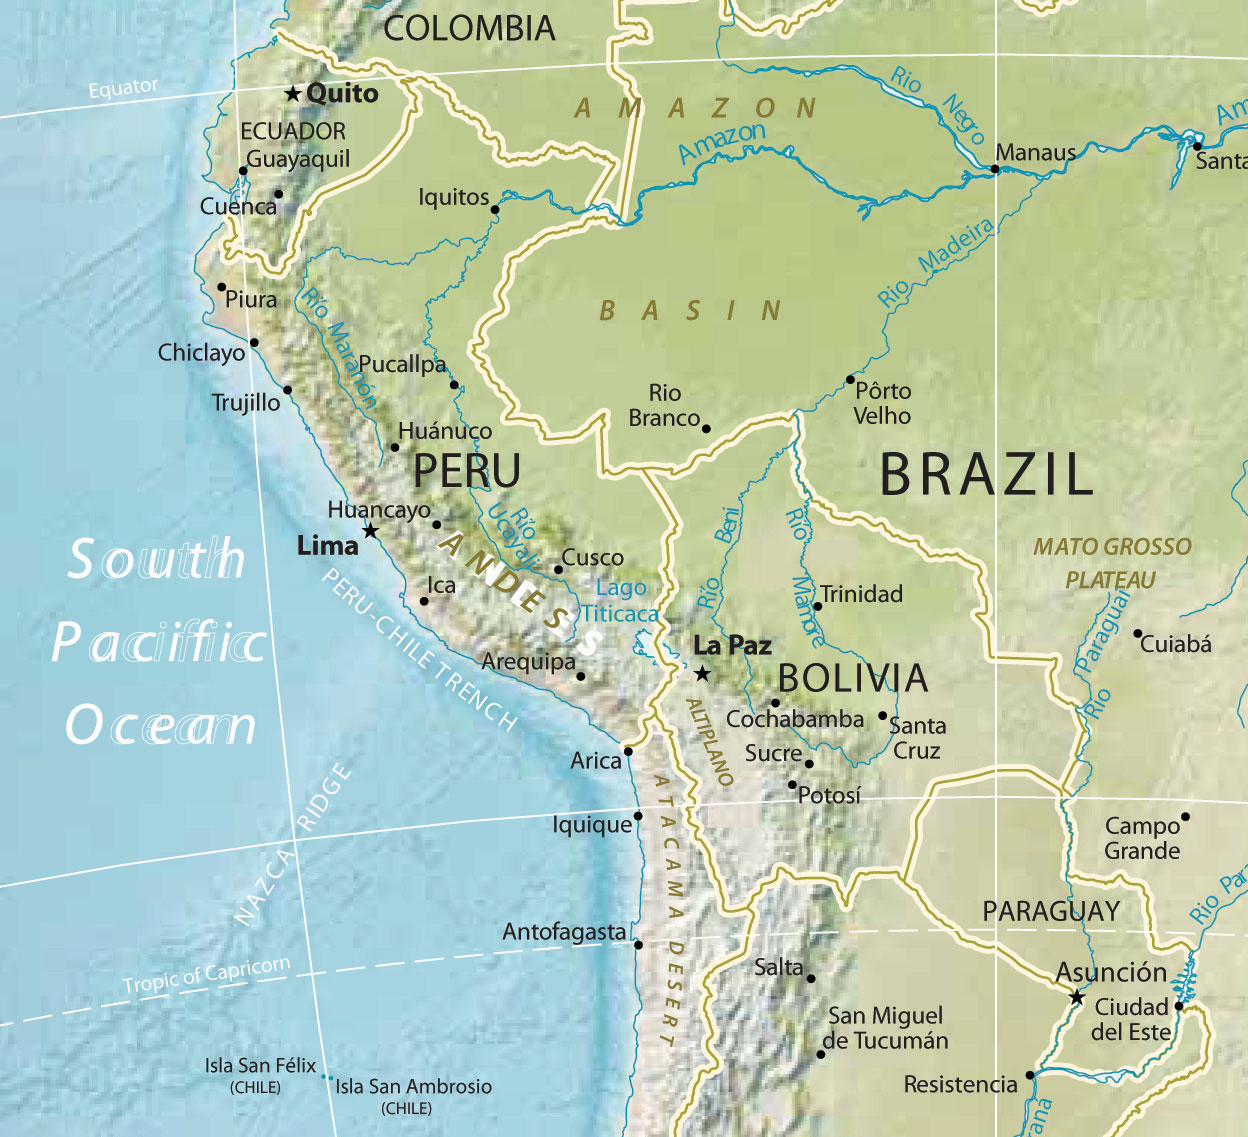 Amazon River In South America Map.South America